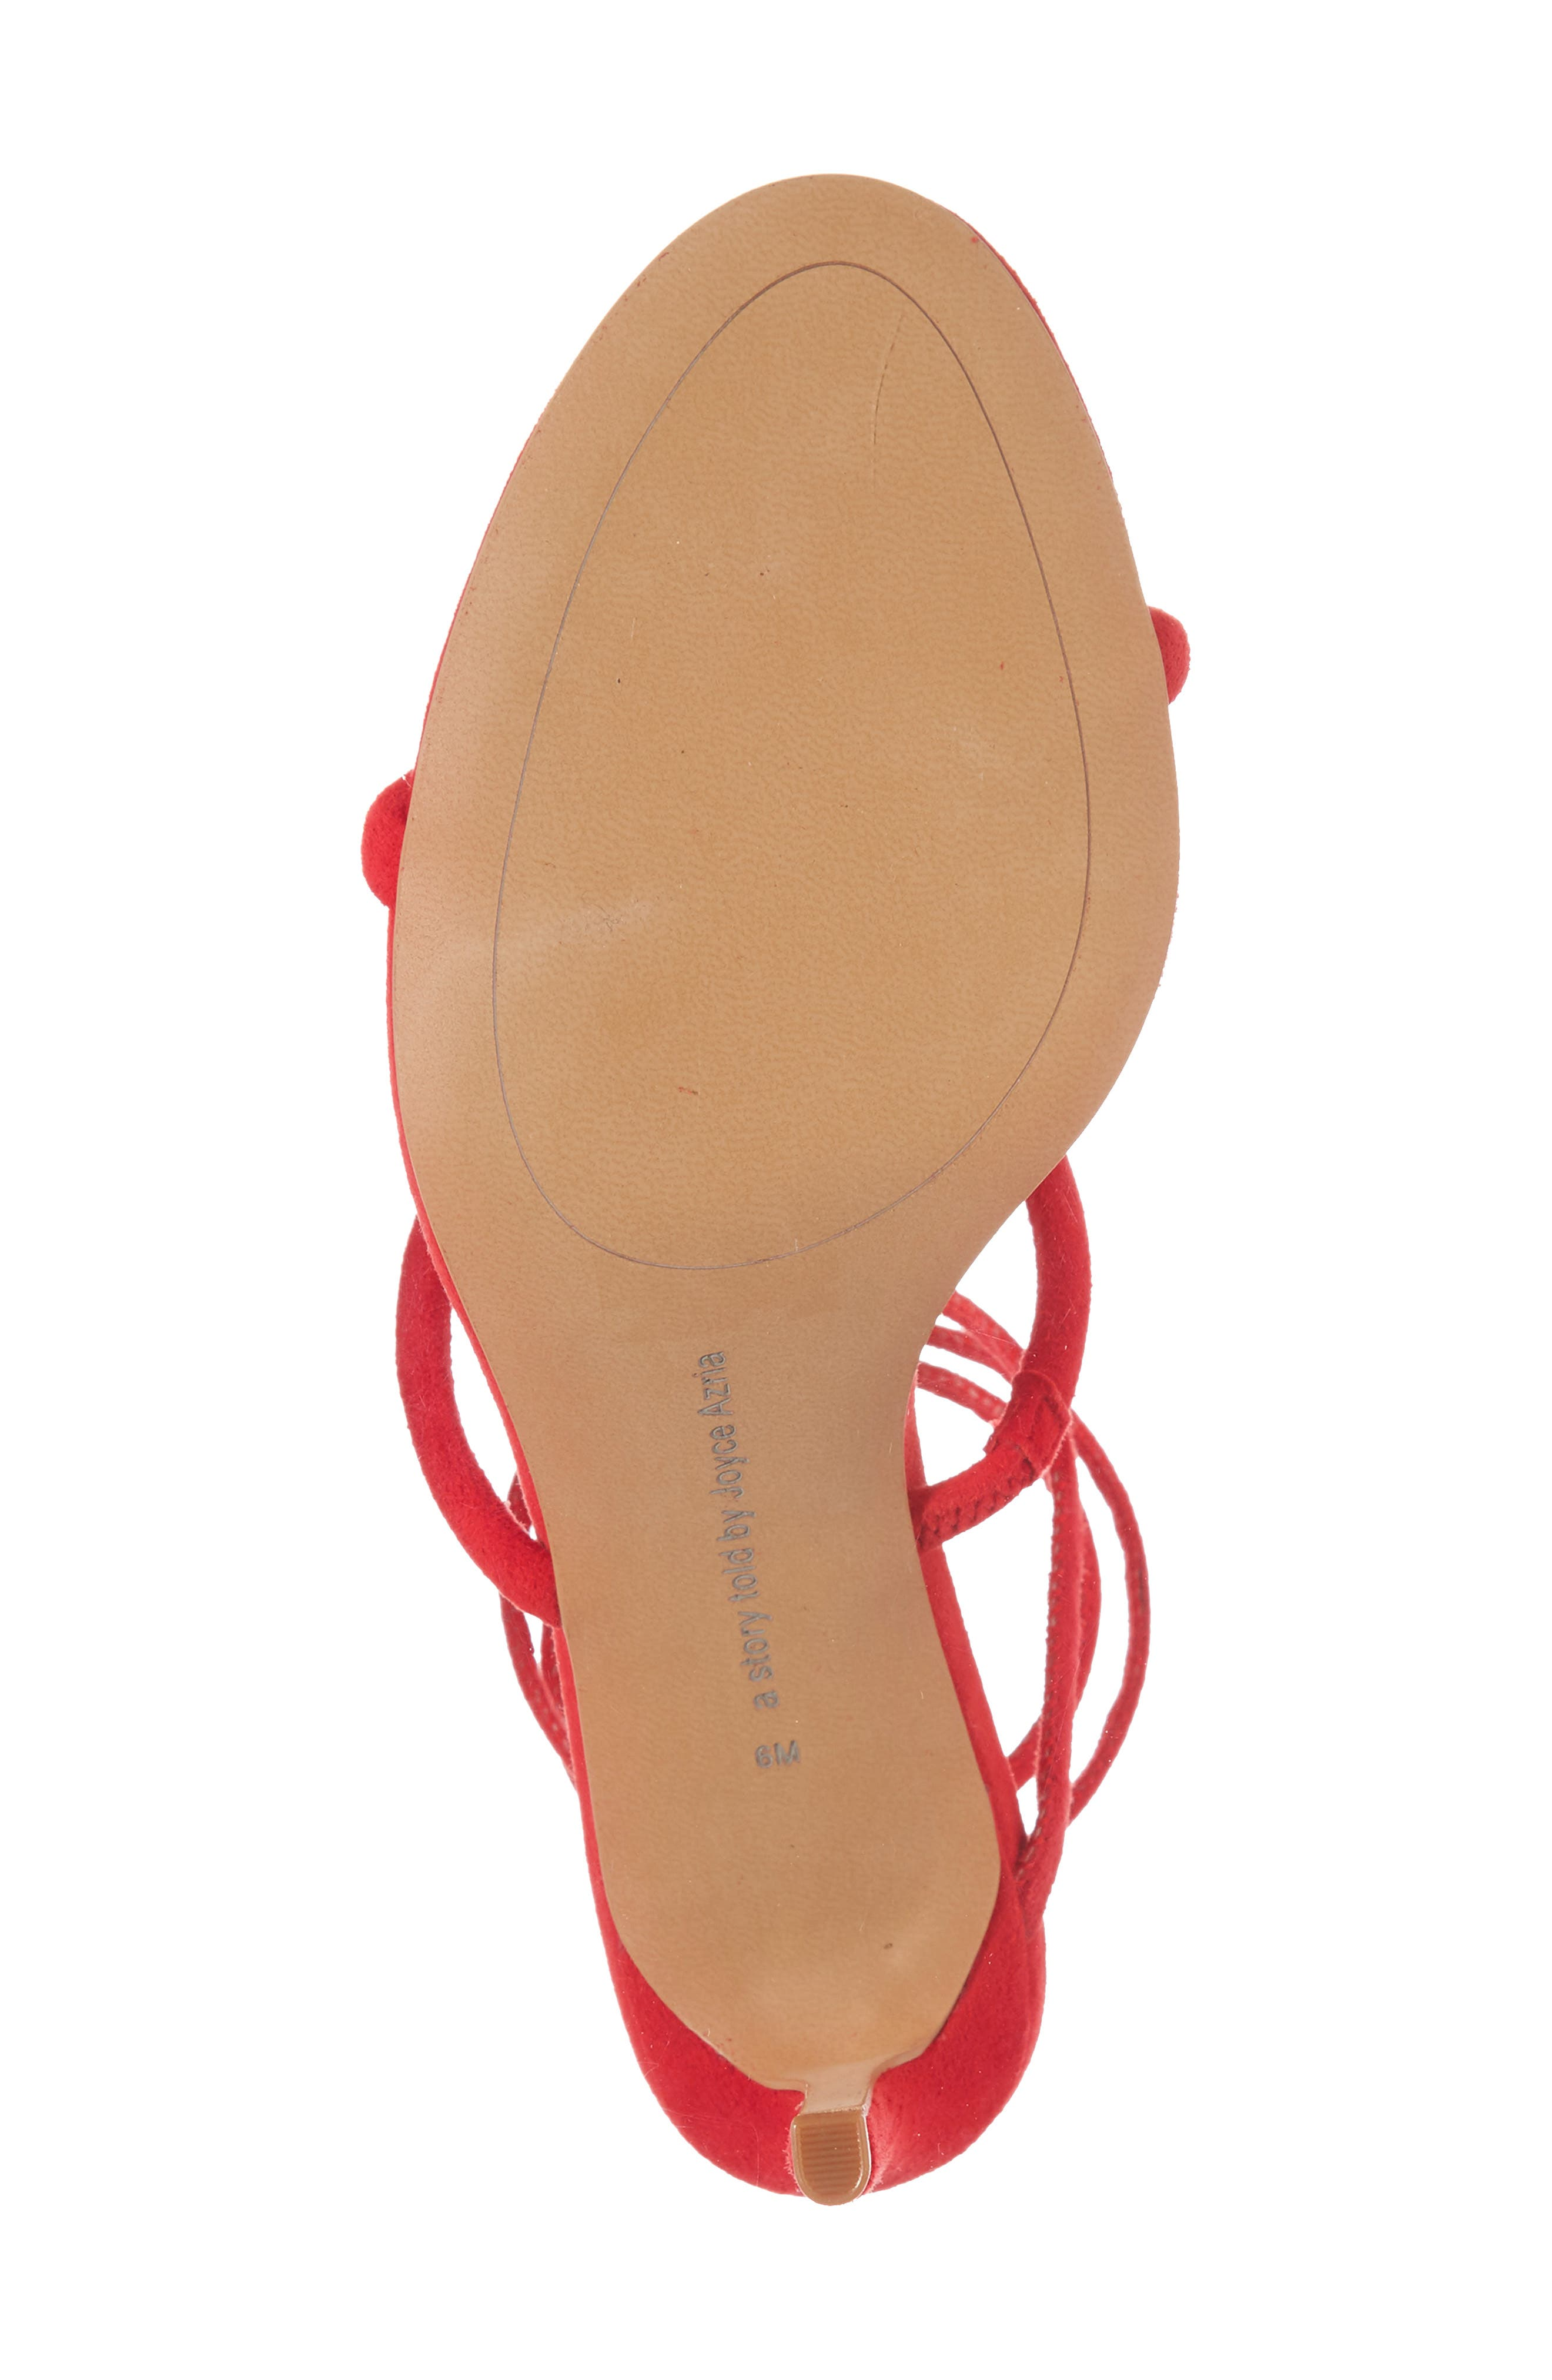 Joia Ankle Wrap Sandal,                             Alternate thumbnail 5, color,                             Rouge Suede